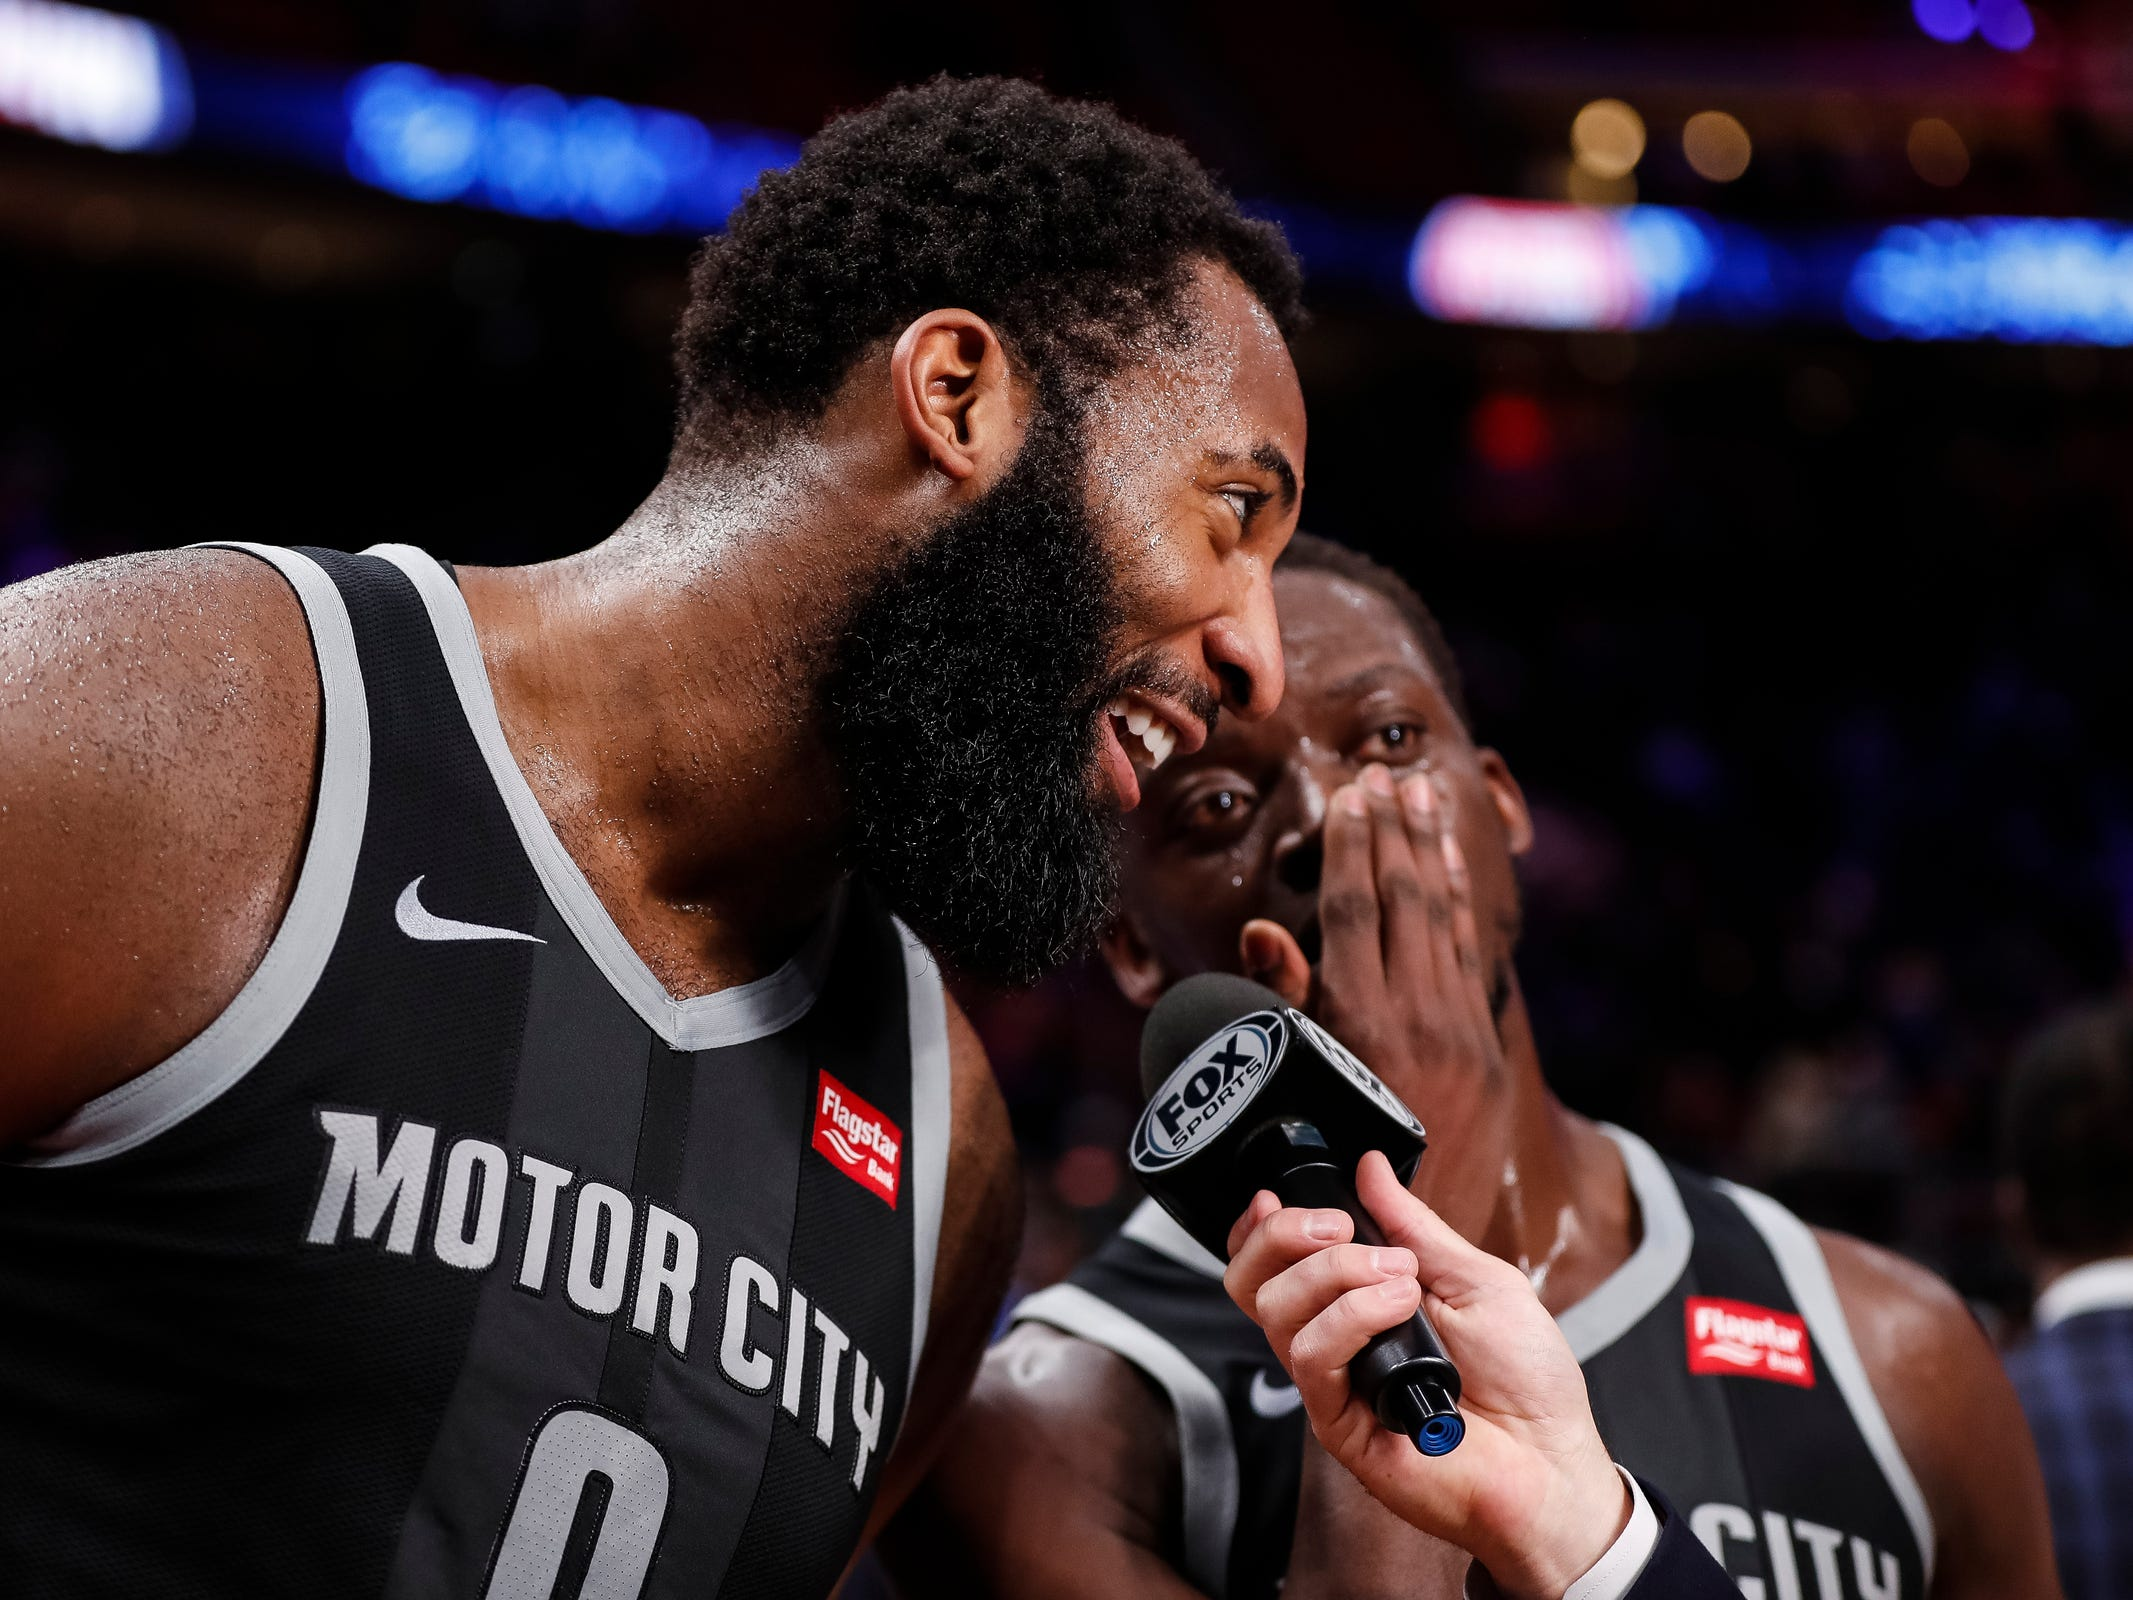 Reggie Jackson, right, whispers to teammate Andre Drummond during the postgame interview after the Detroit Pistons' 99-90 win over the Portland Trail Blazers on Saturday, March 30, 2019, at Little Caesars Arena.